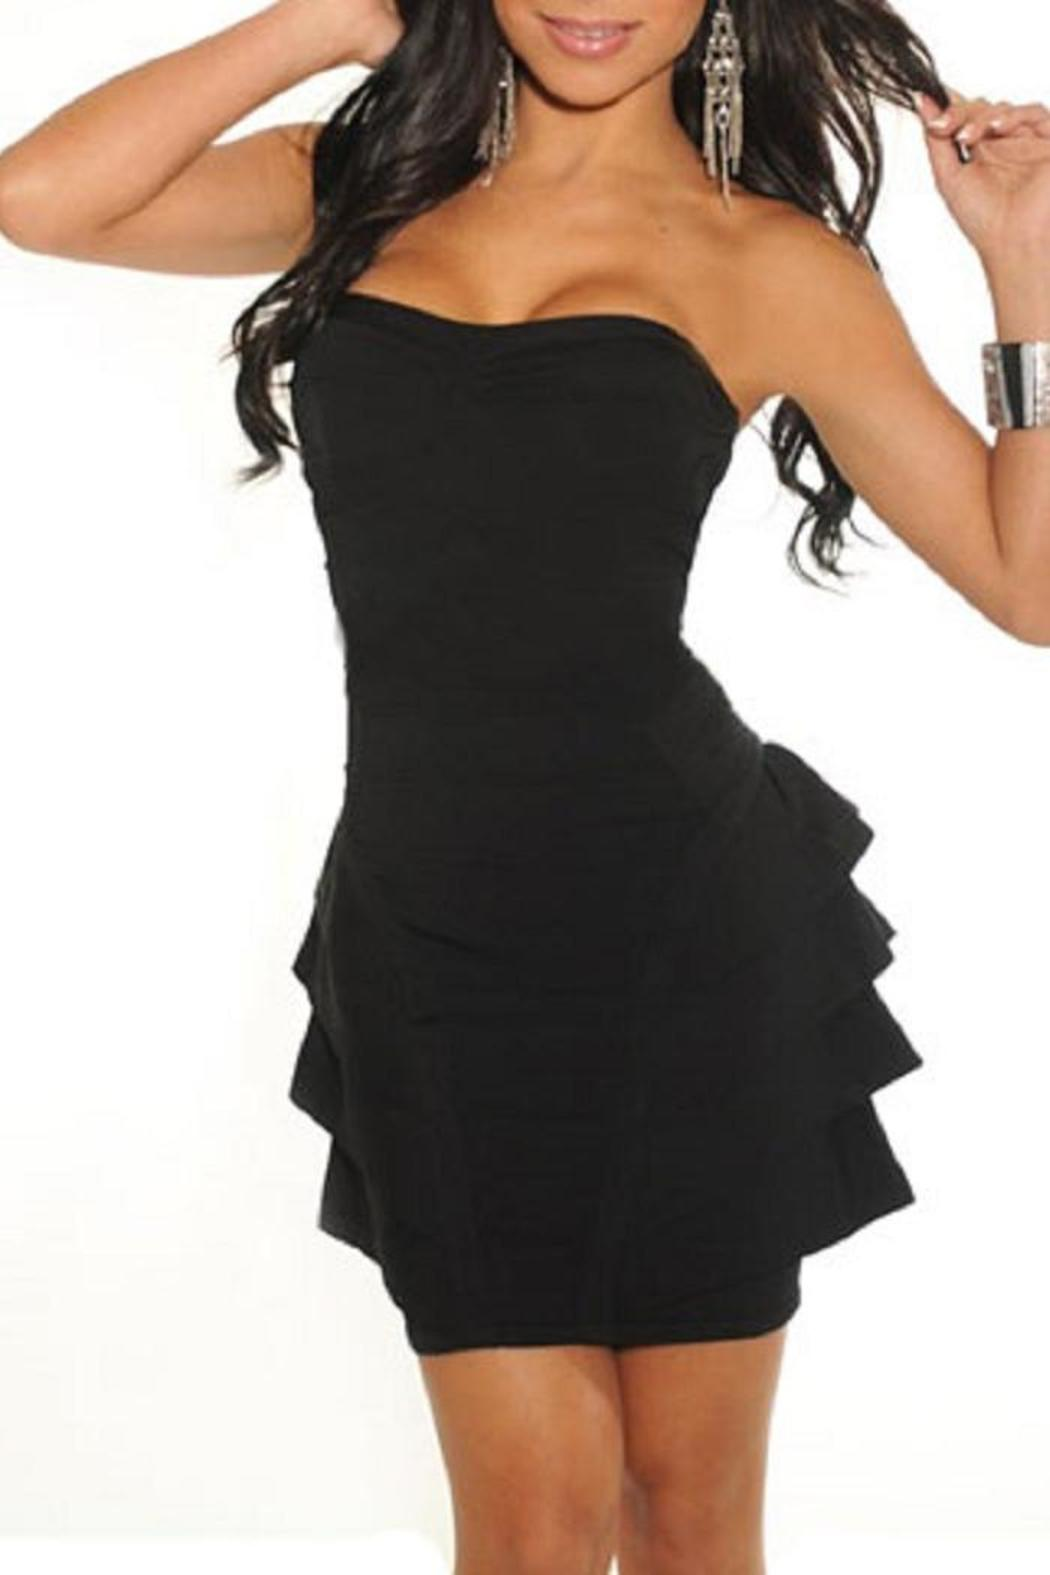 Adore Clothes & More Ruffled Strapless Dress - Main Image